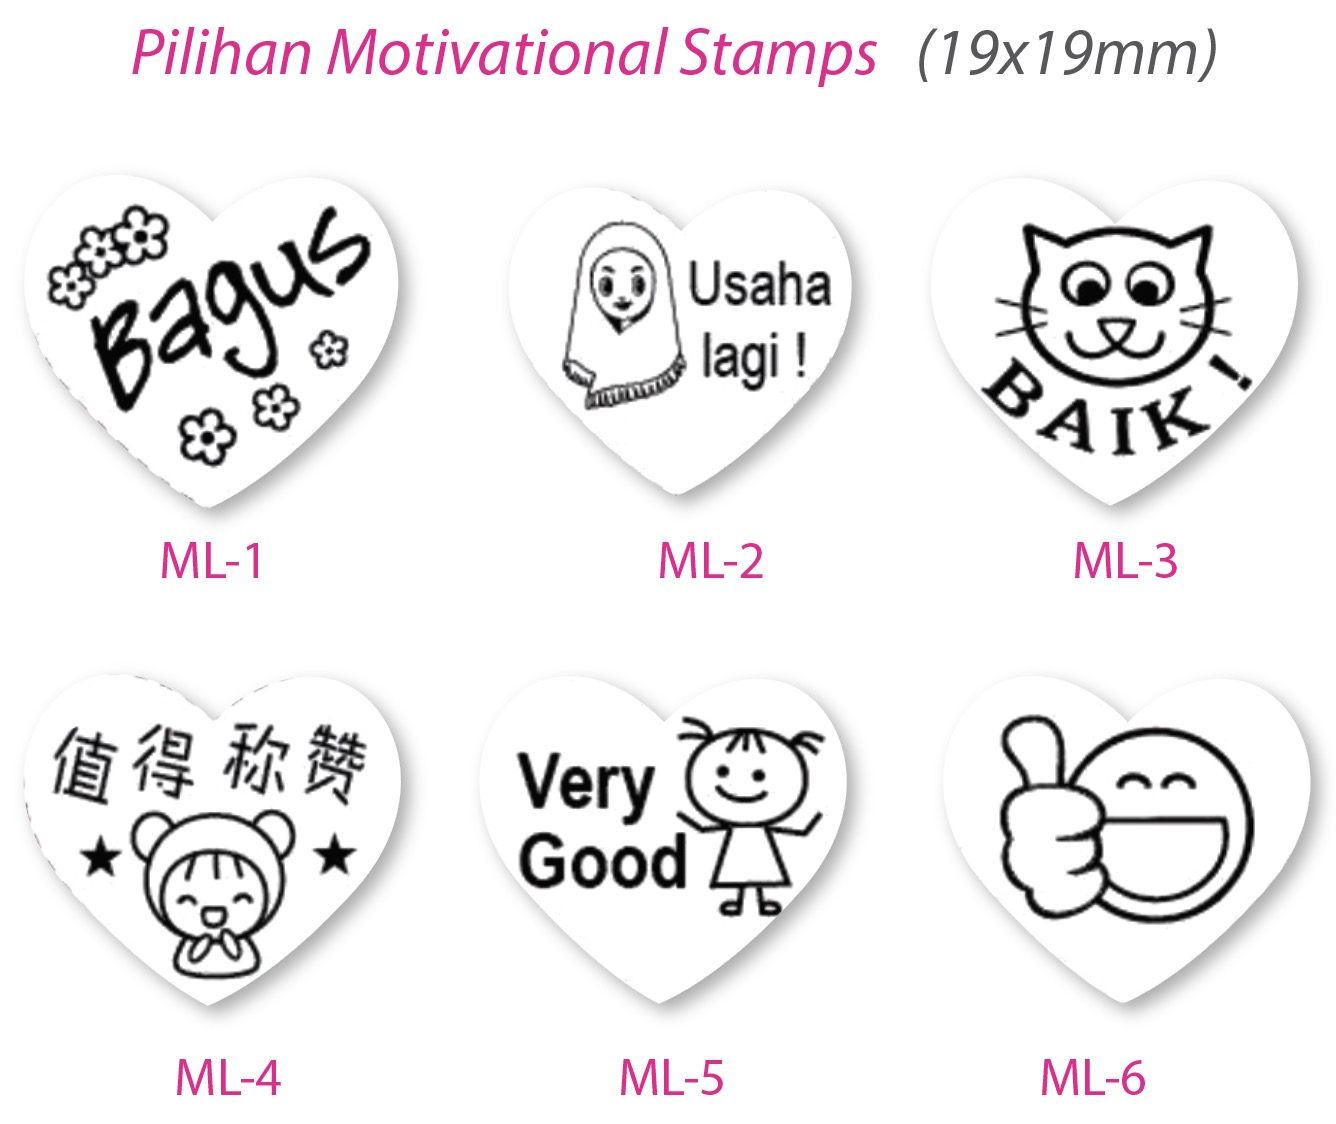 Motivational Stamps - Model AD